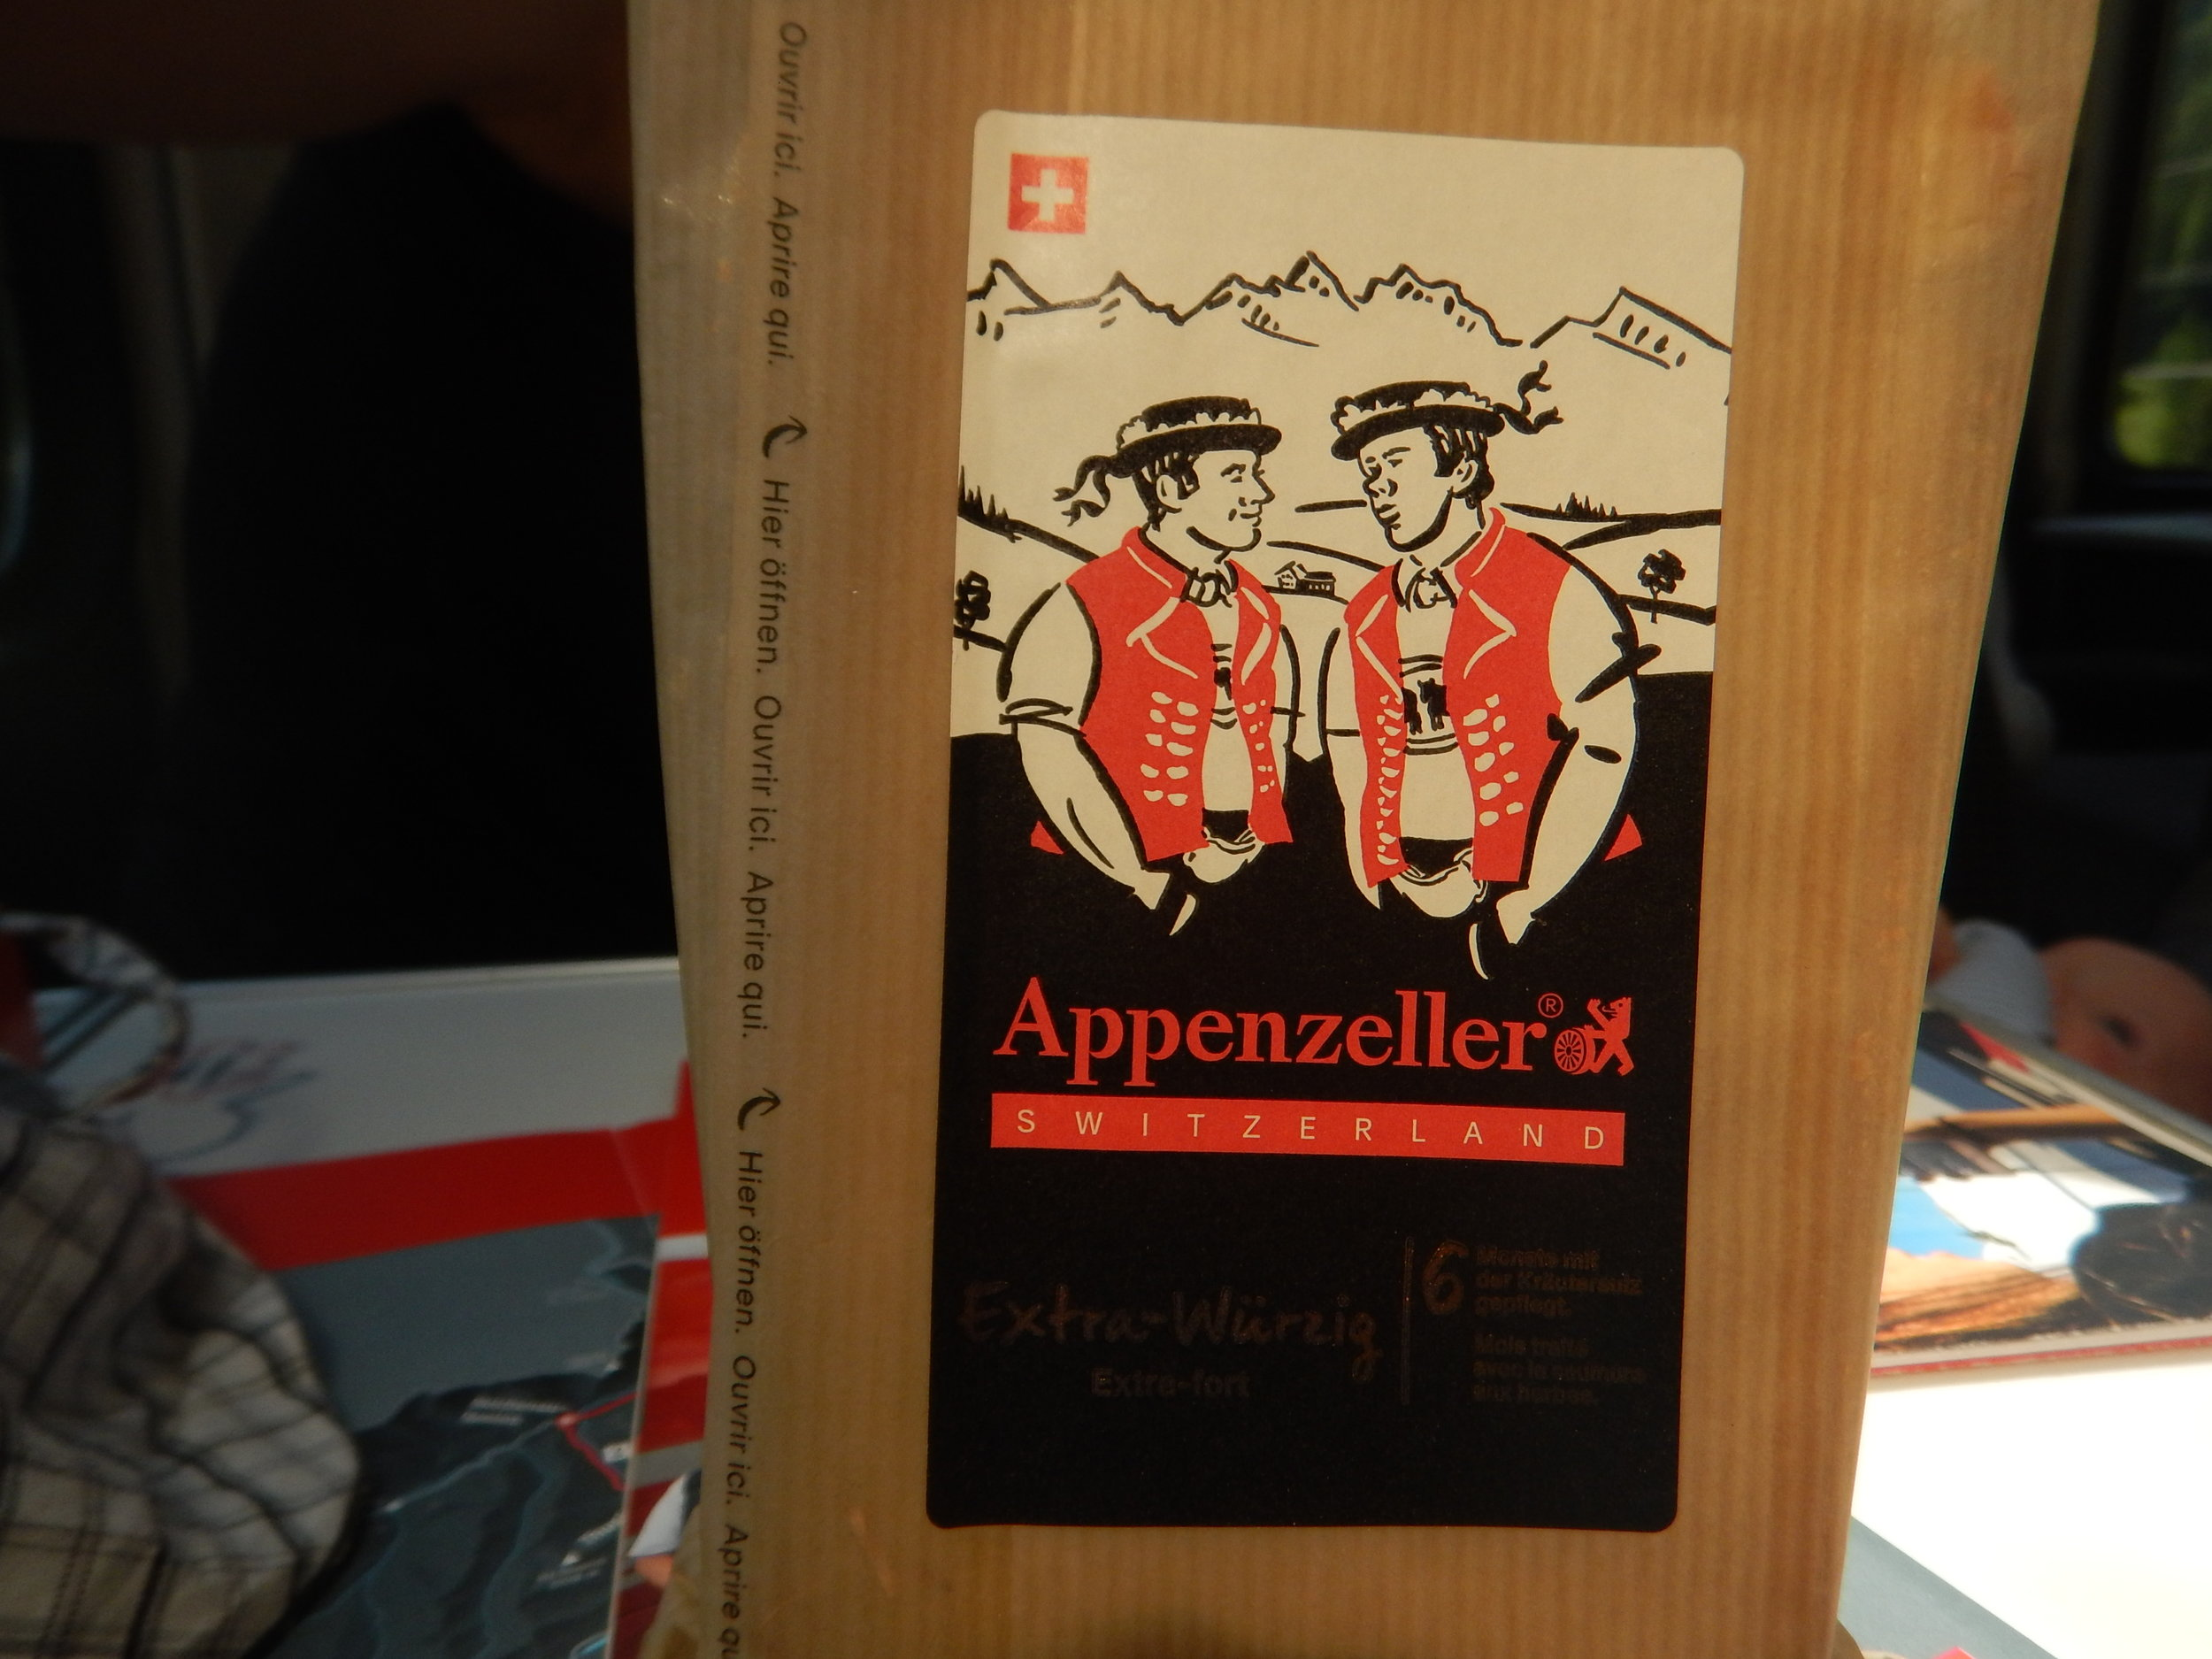 this cheese is so Swiss you can hear these guys yodelling.